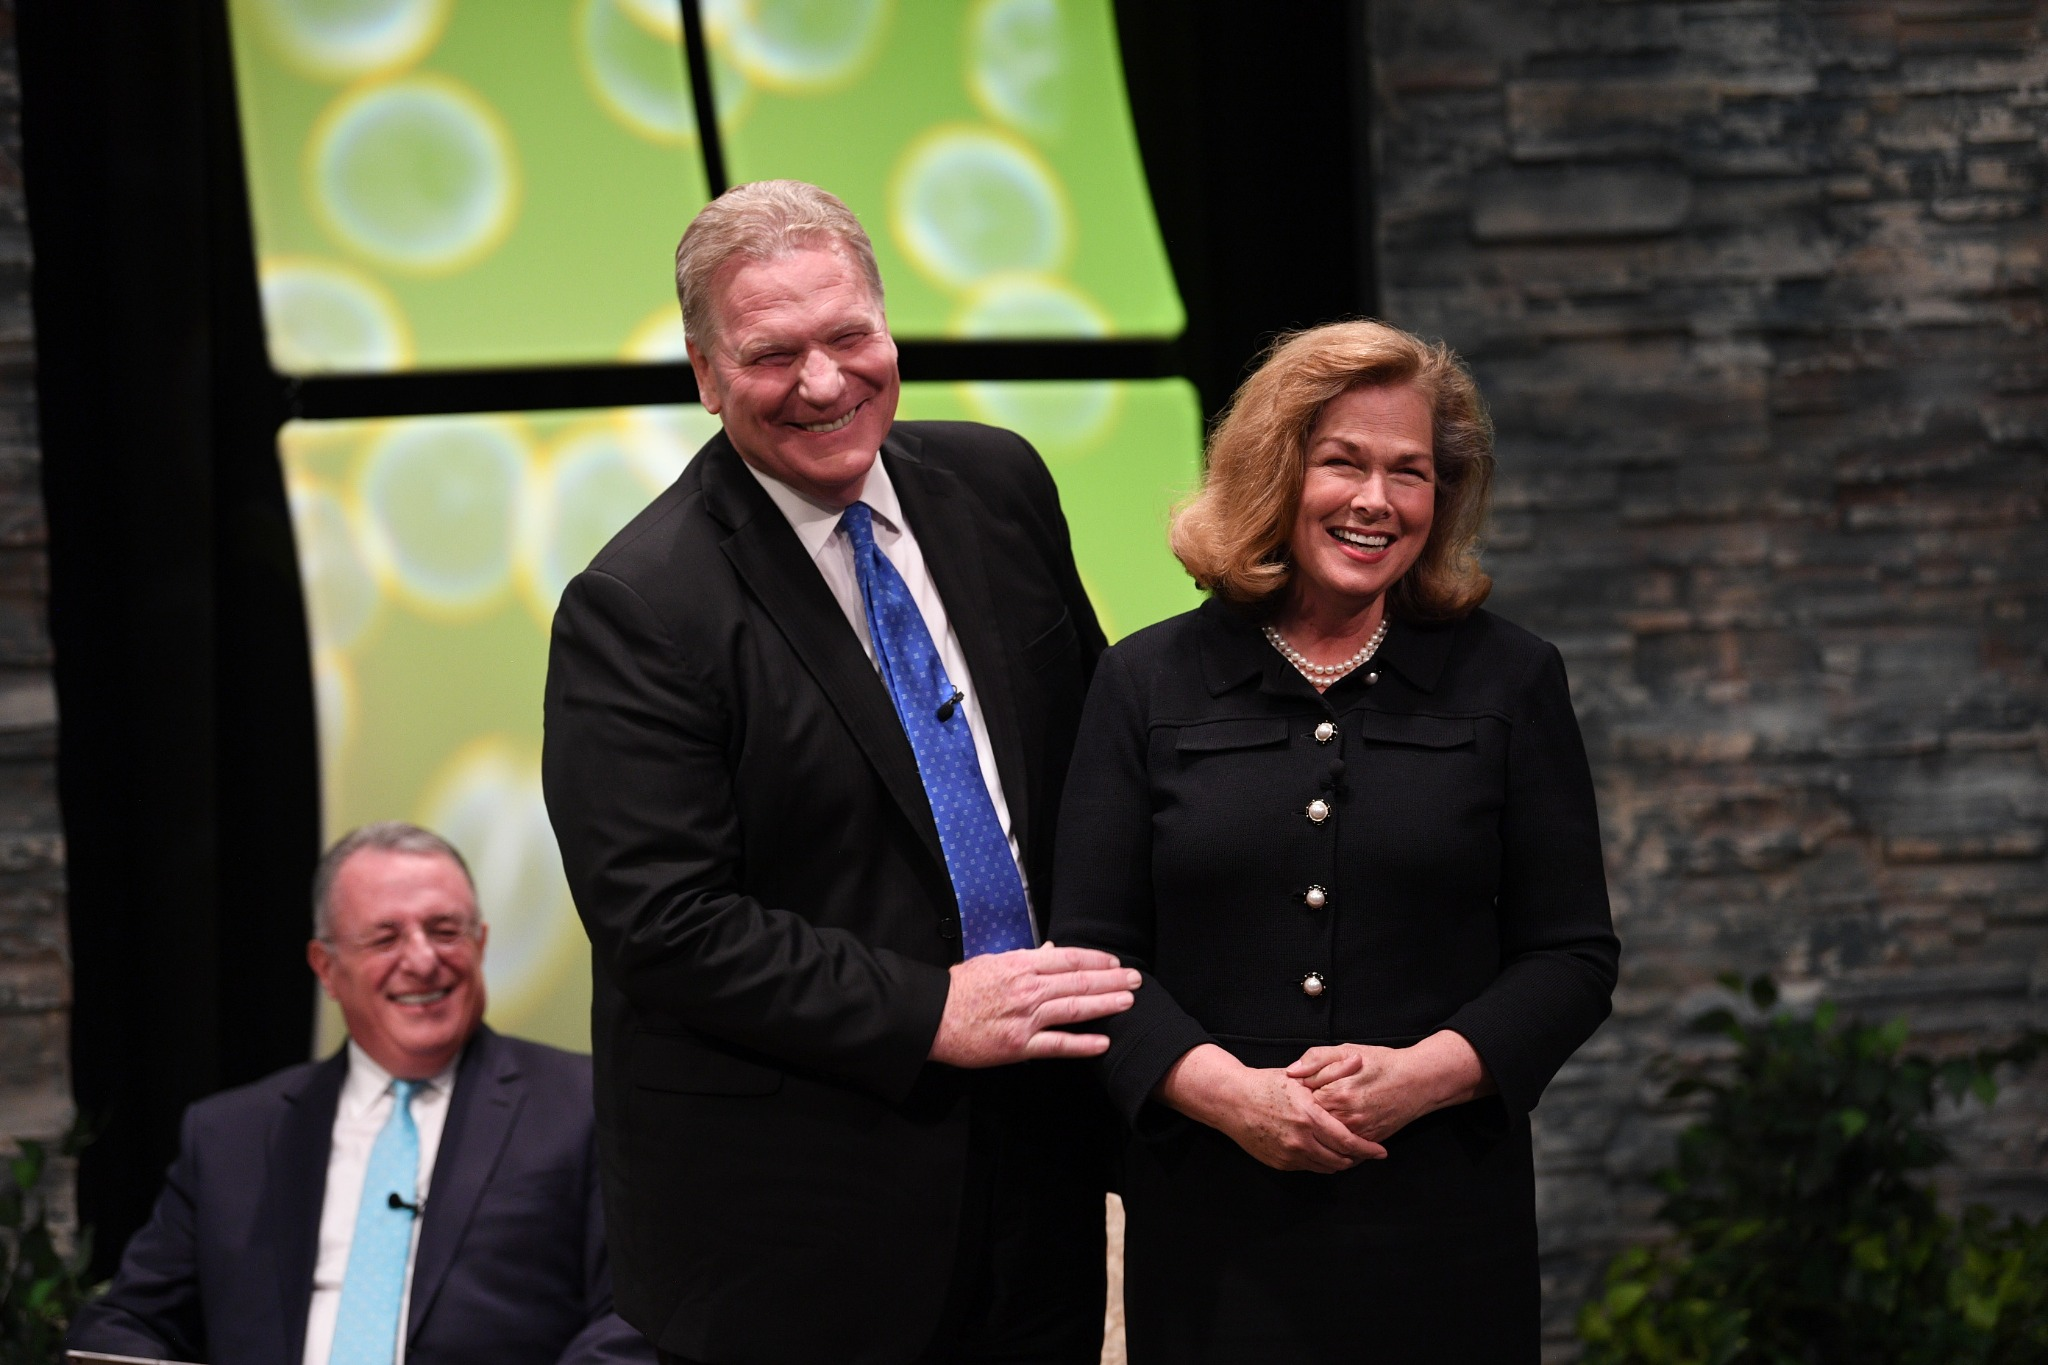 Elder Craig C. Christensen of the Seventy introduces his wife, Debbie, to the young adult audience at the Worldwide Devotional Face to Face broadcast on Sunday, Sept. 15, 2019, in Provo, Utah.